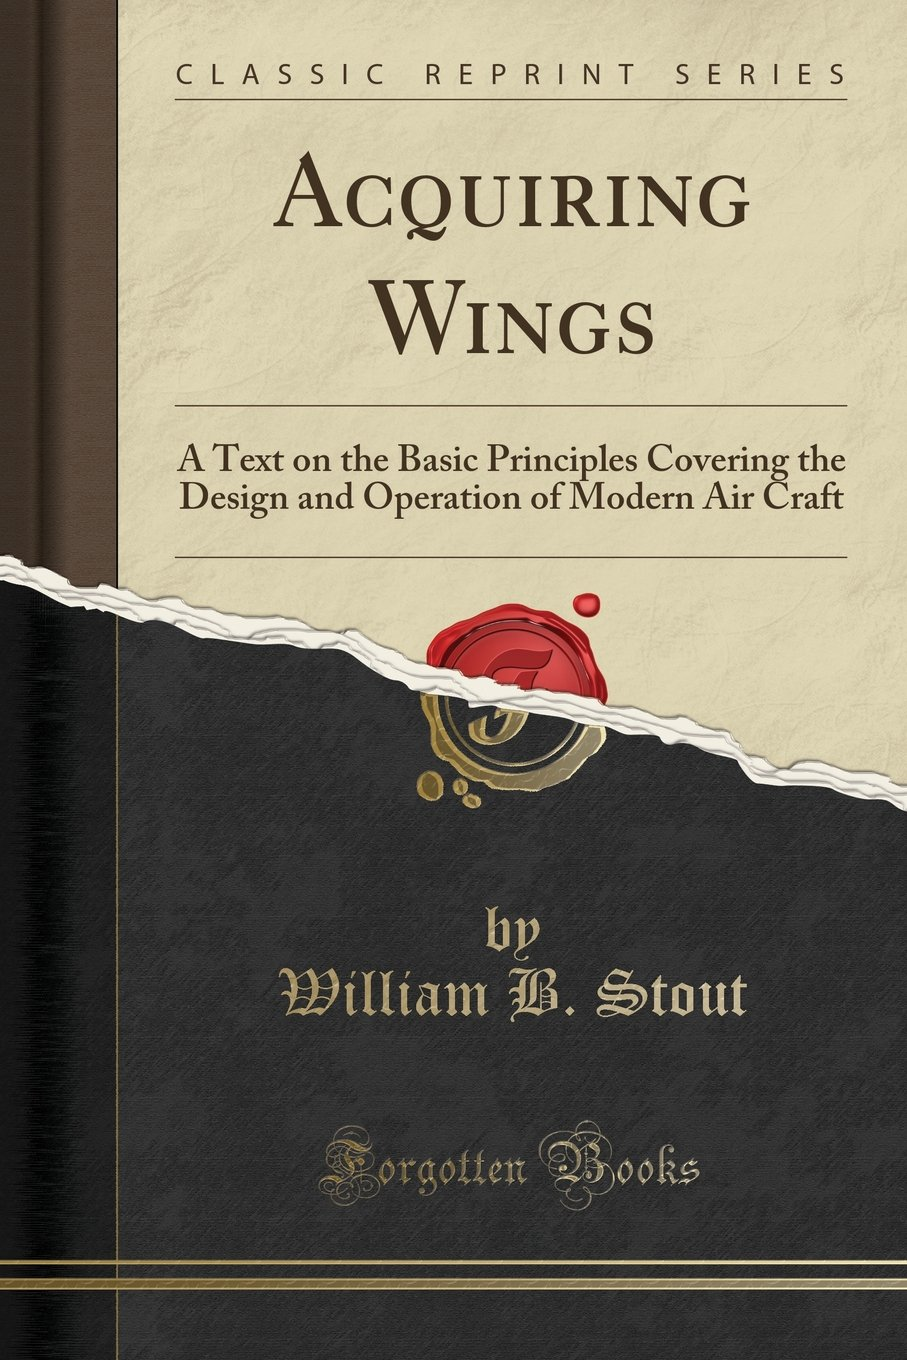 Acquiring Wings: A Text on the Basic Principles Covering the Design and Operation of Modern Air Craft (Classic Reprint) PDF